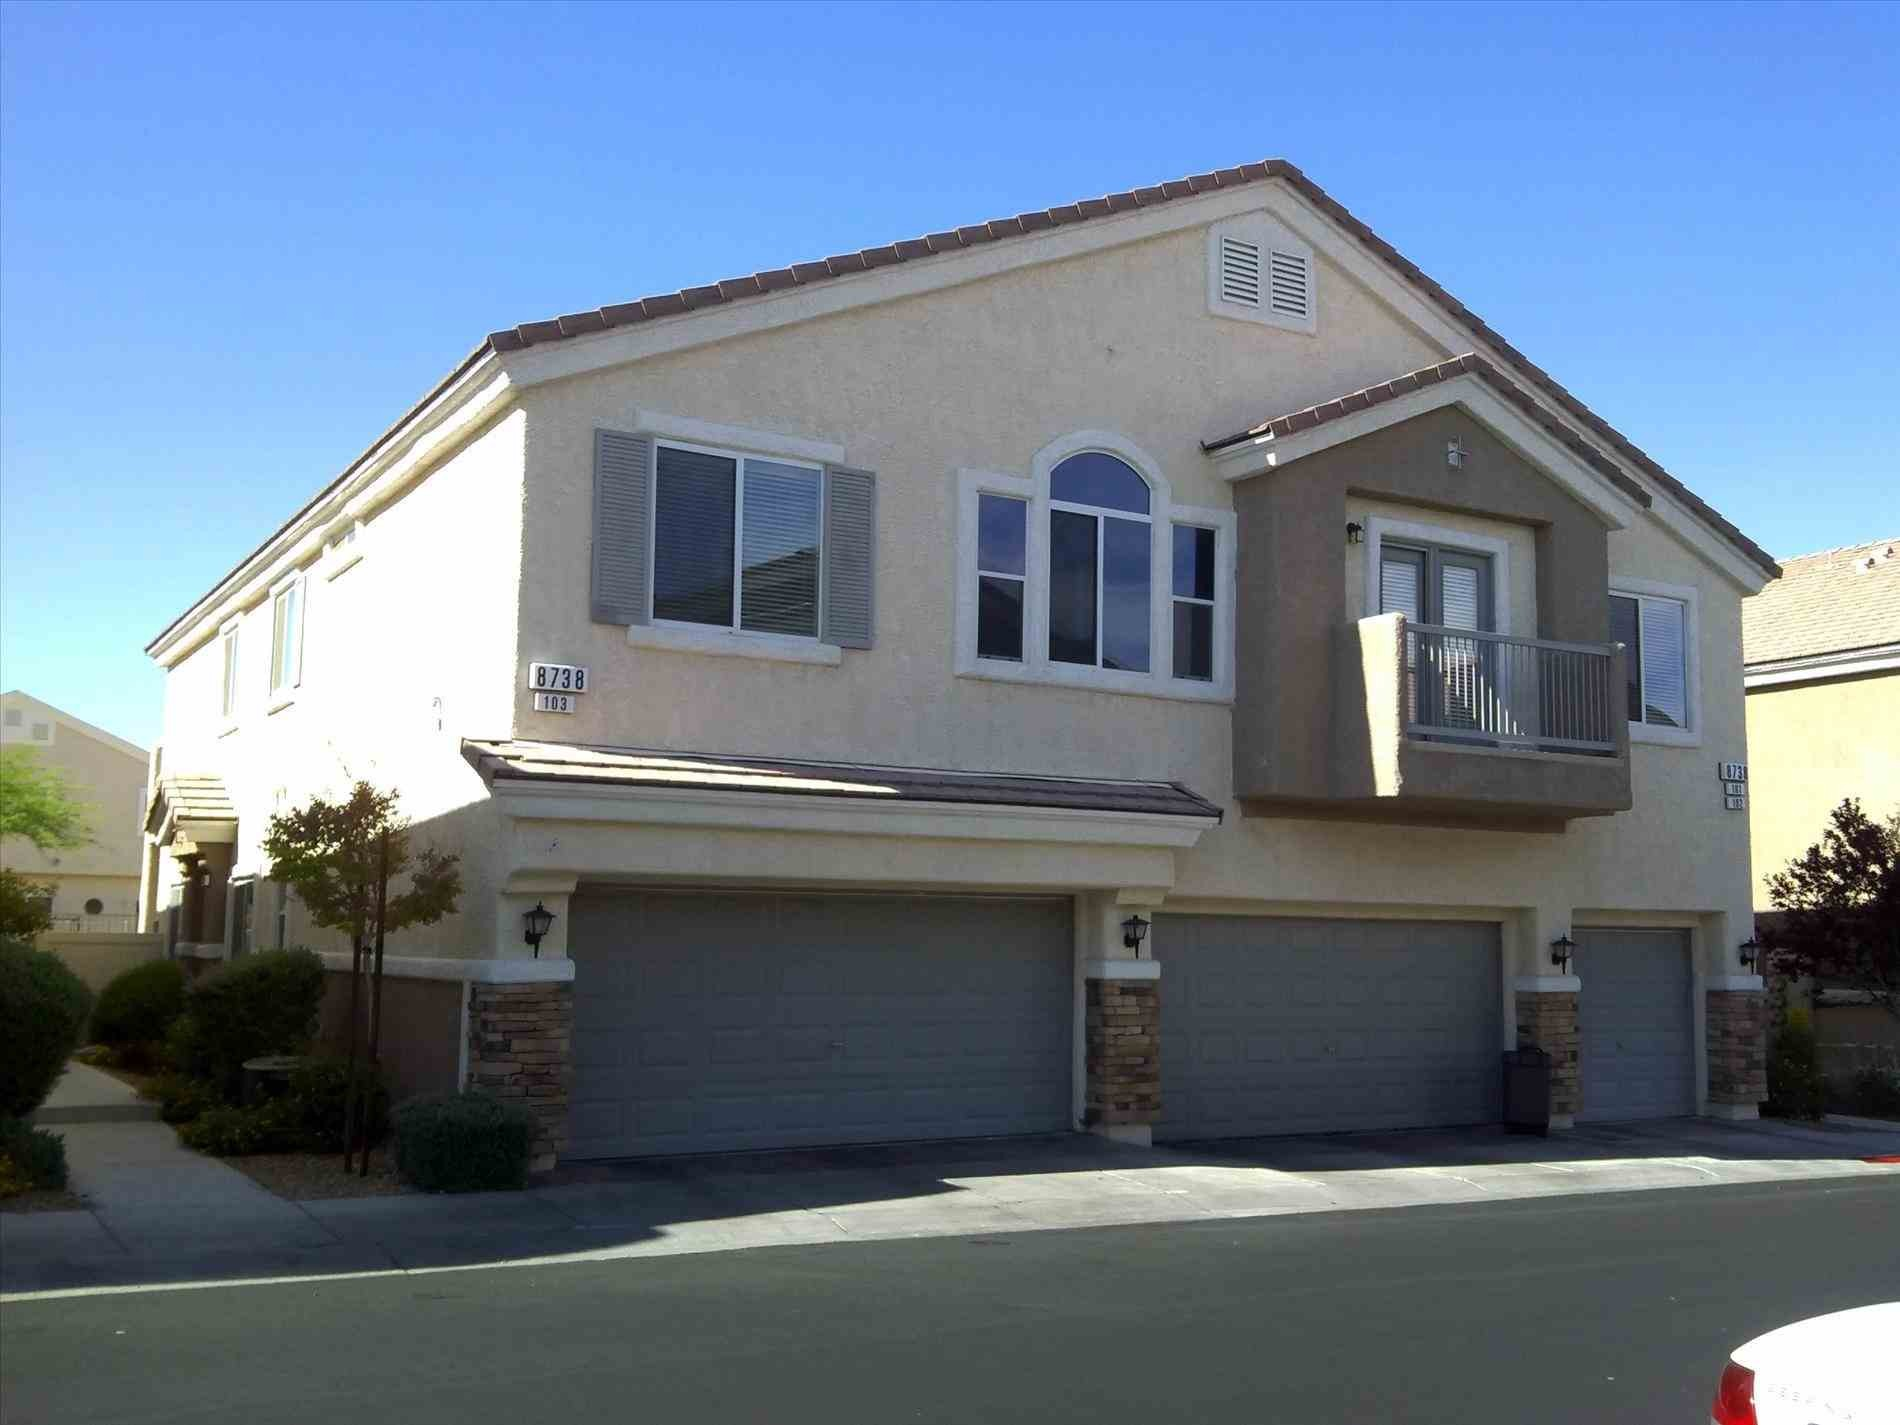 Rentals Close To Me Houses For Rent Info